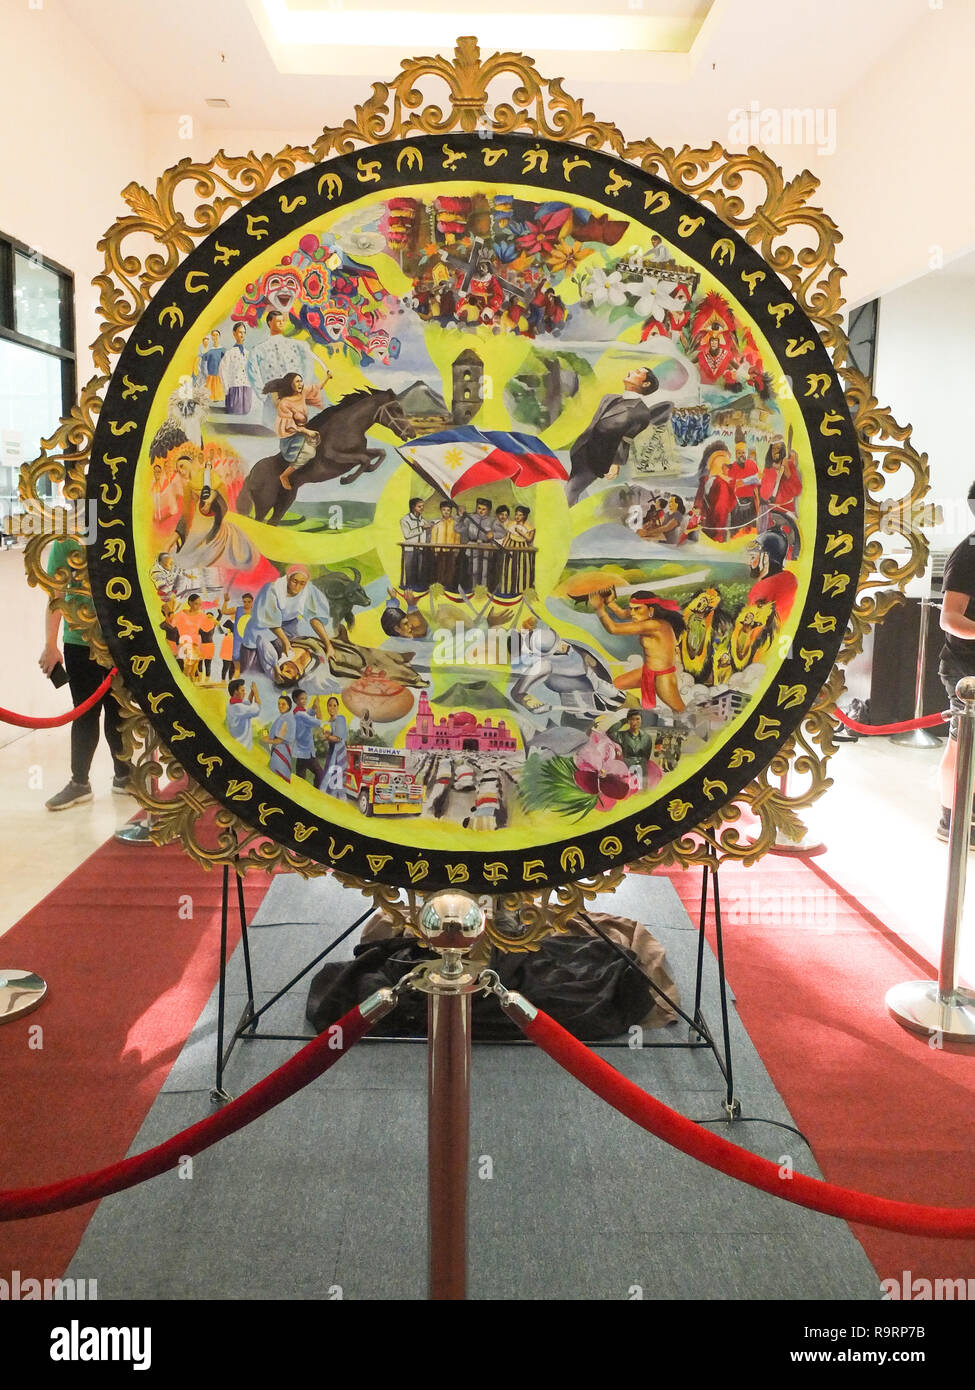 Manila Philippines 27th Dec 2018 The Back Of The Parol Features A